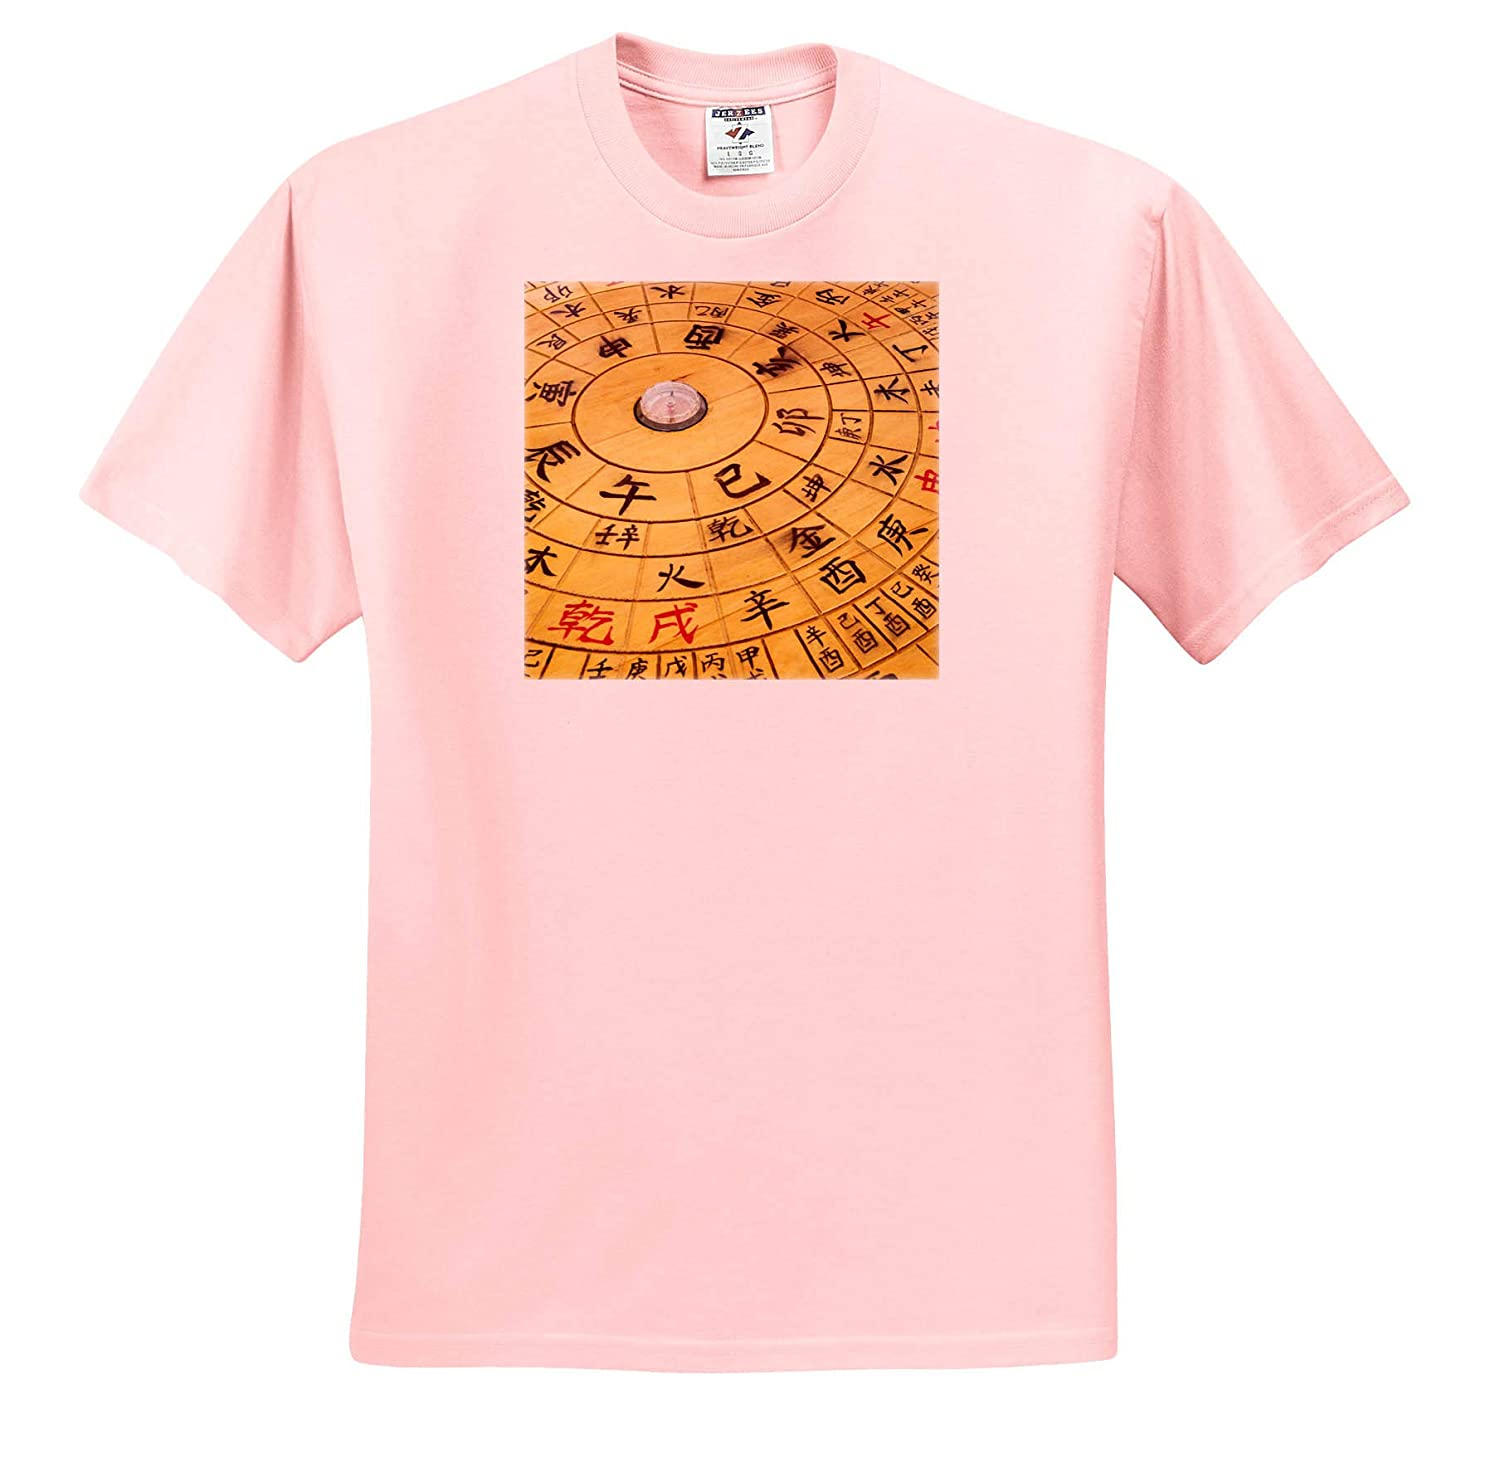 Characters on Chinese Calendar Decor 3dRose Danita Delimont - Adult T-Shirt XL ts/_314548